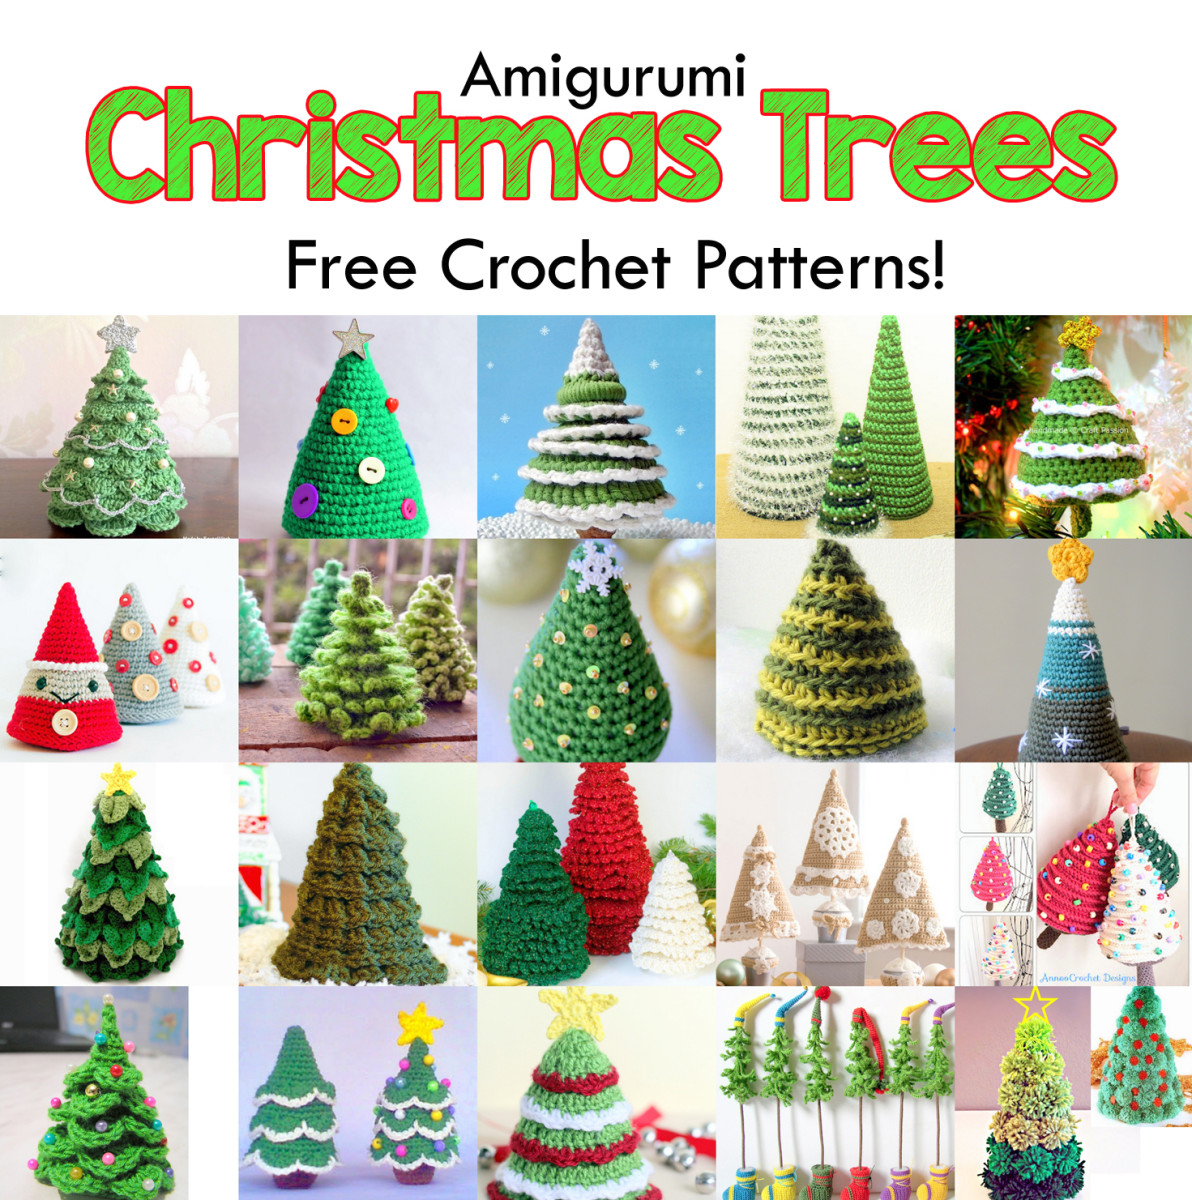 19 Free Amigurumi Christmas Tree Crochet Patterns